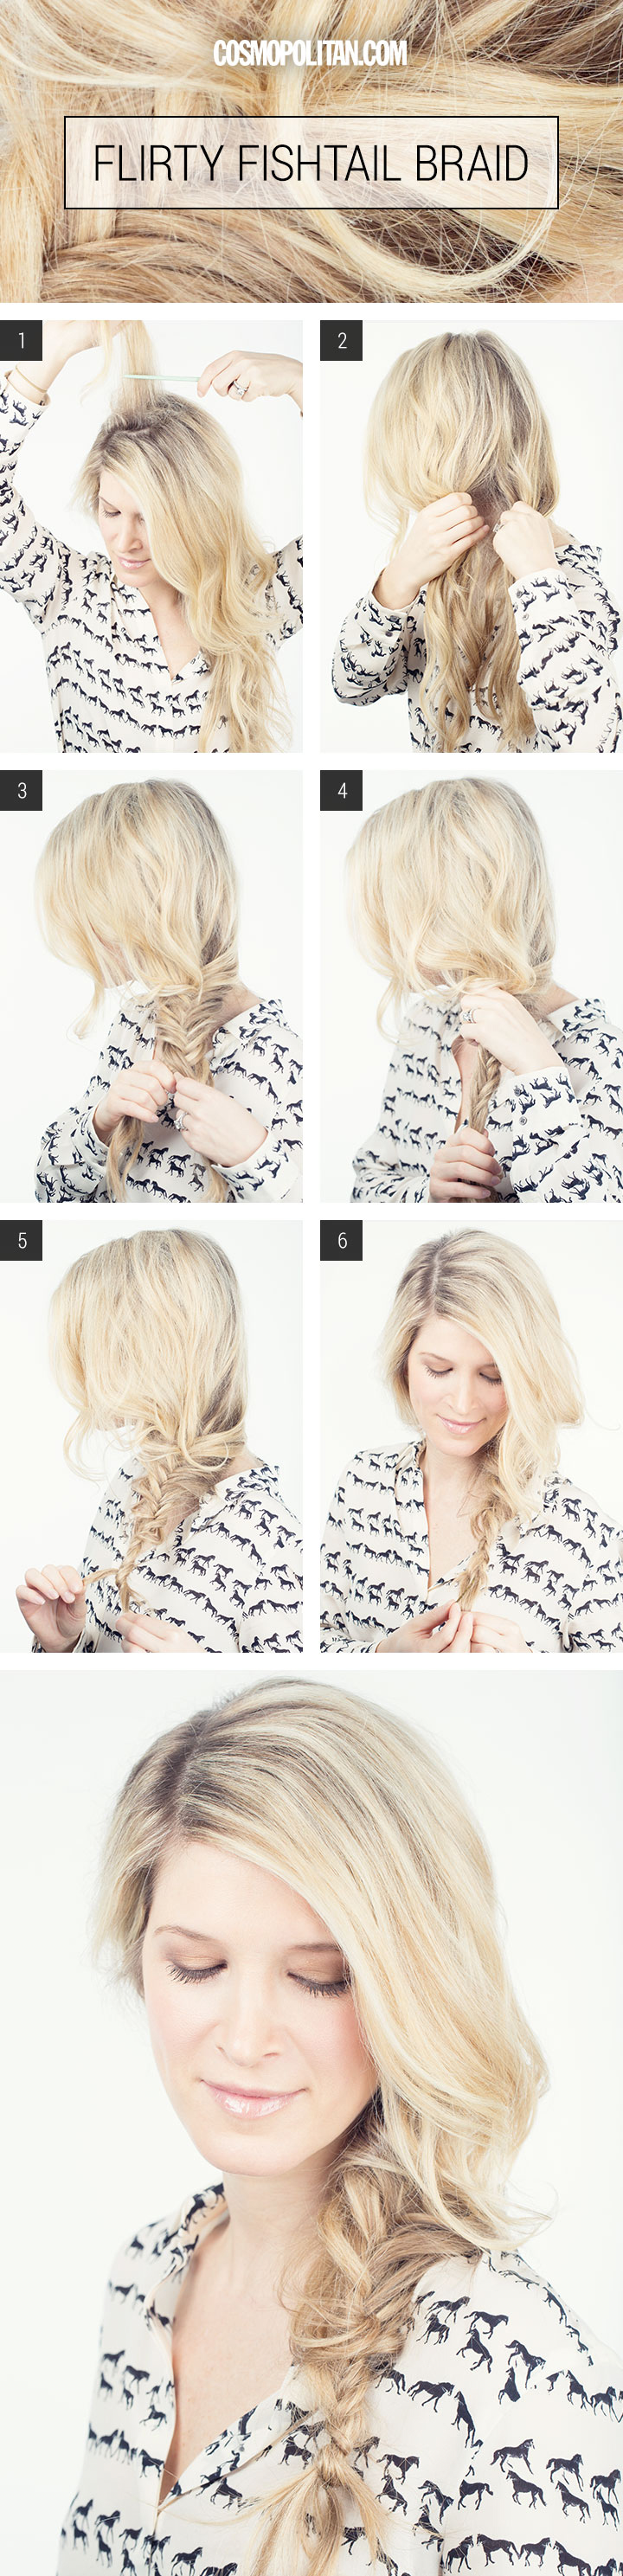 super easy hair looks every woman can do in minutes fashion